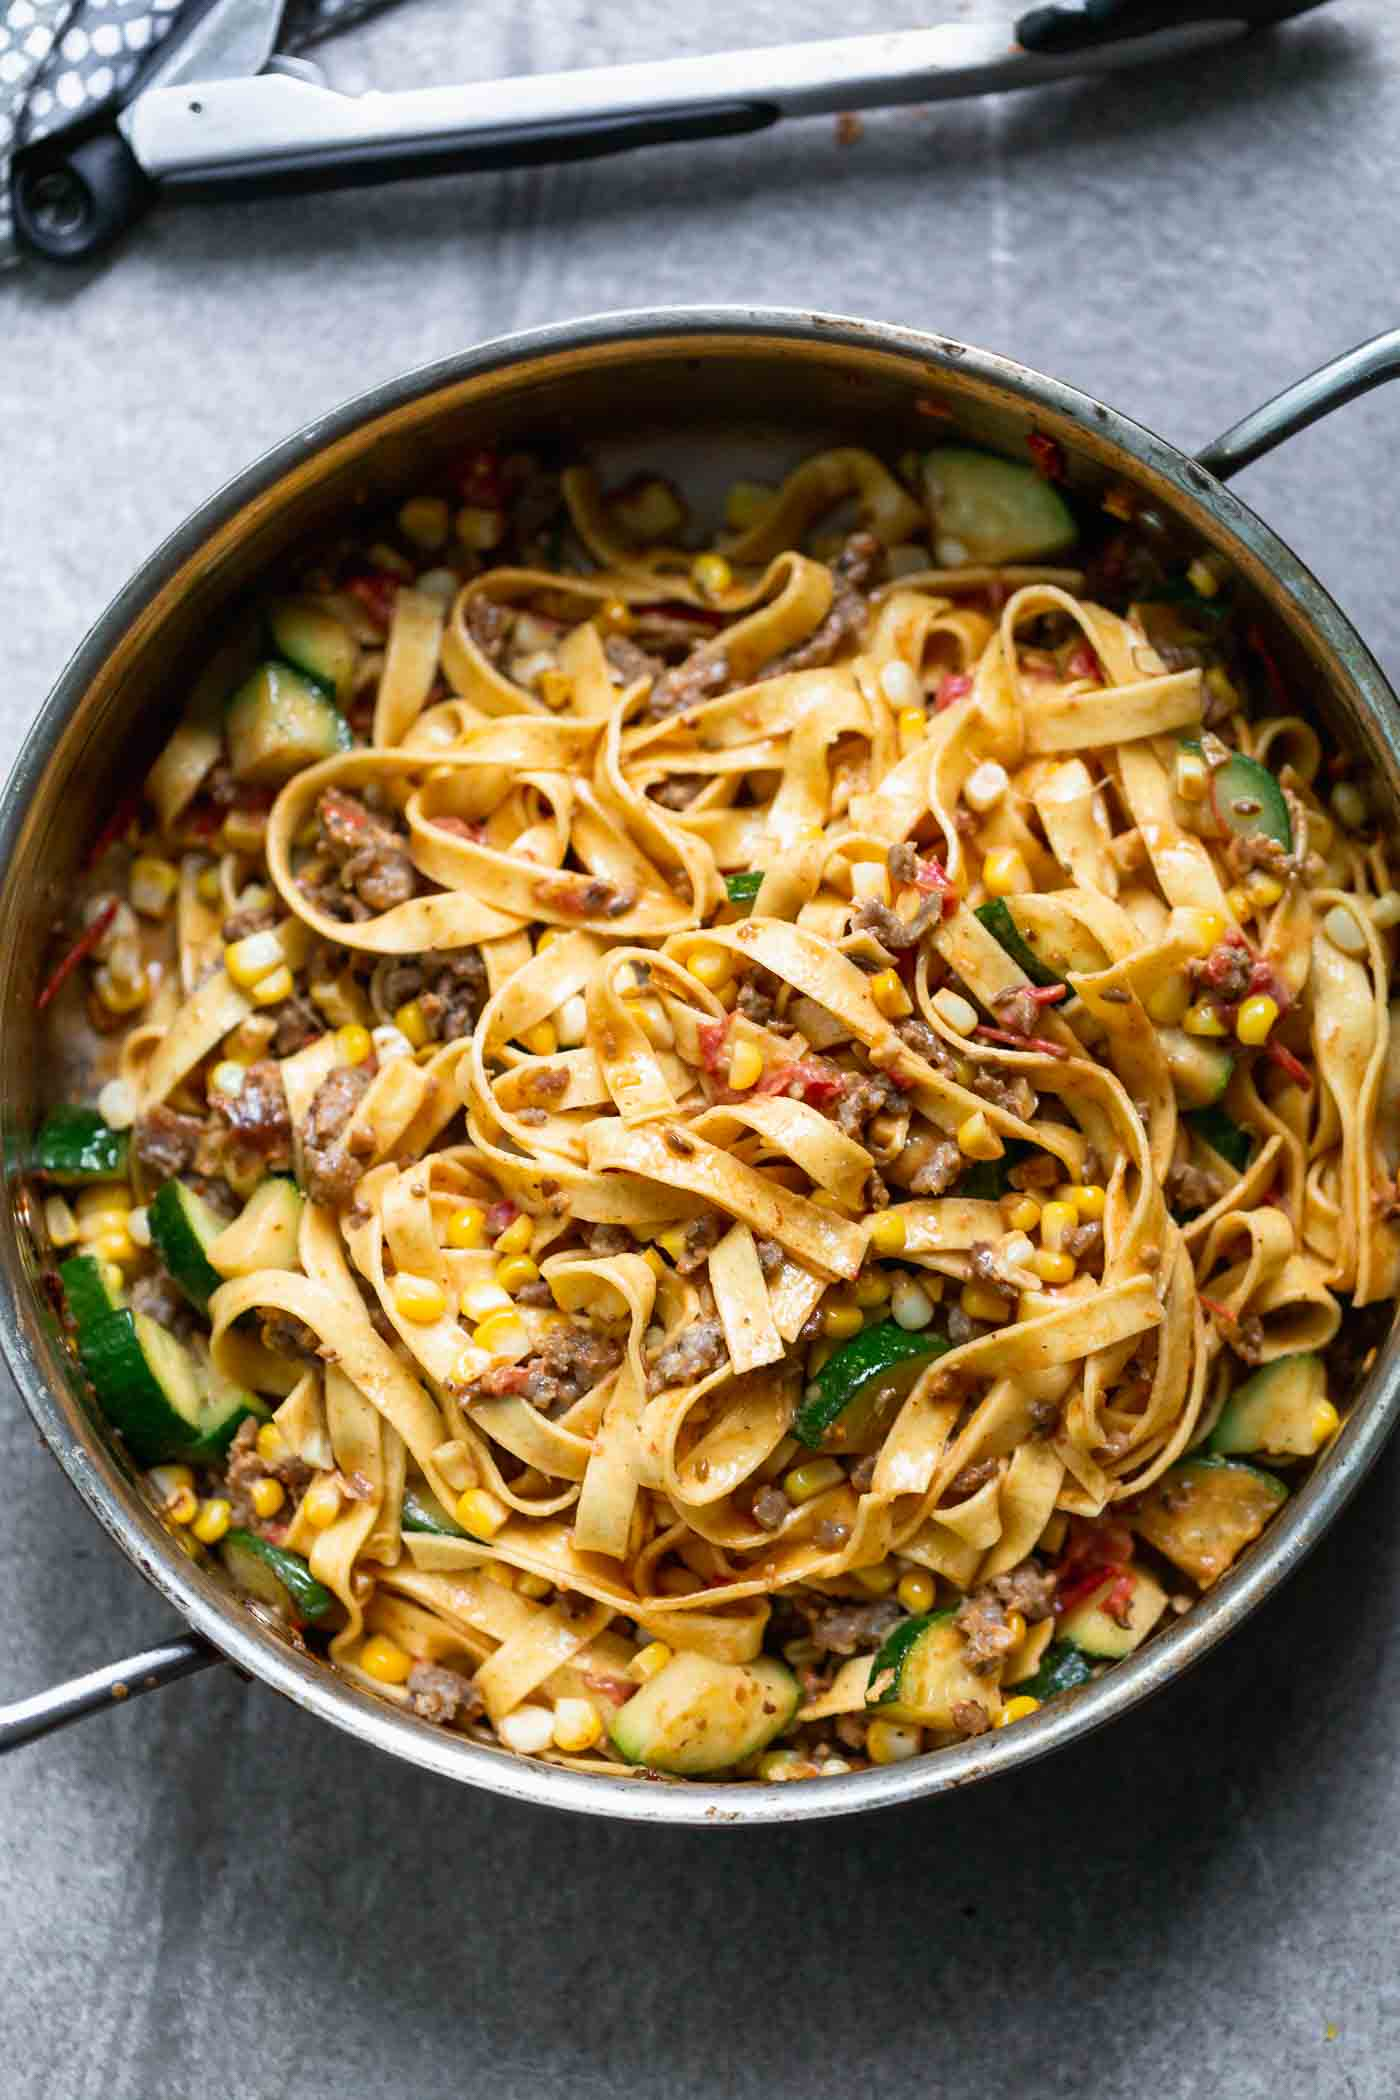 Summer Pasta with Brown Butter Tomato Sauce